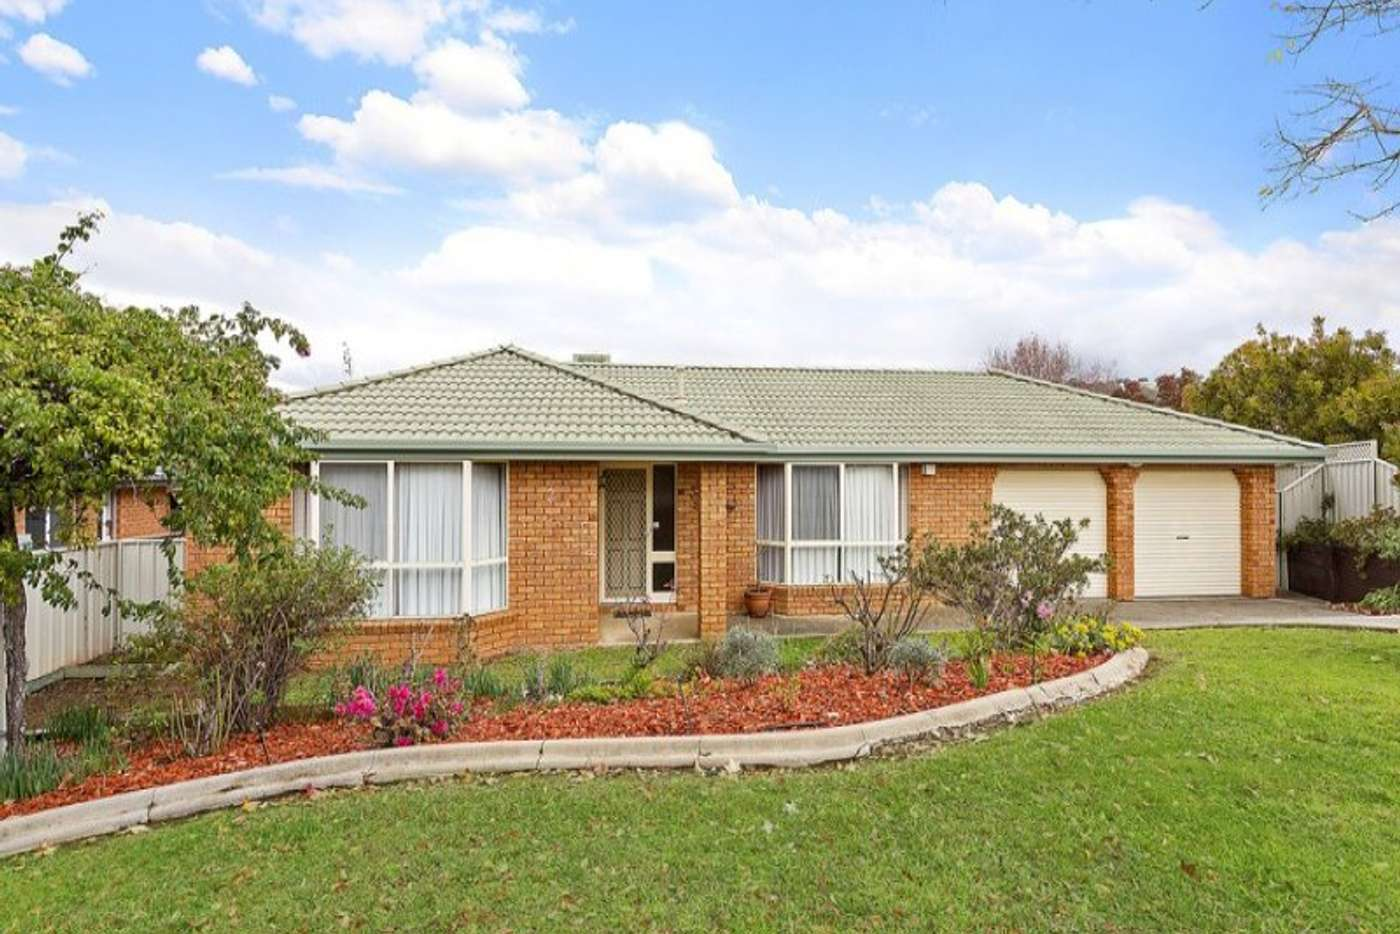 Main view of Homely house listing, 2 Canary Court, Wodonga VIC 3690